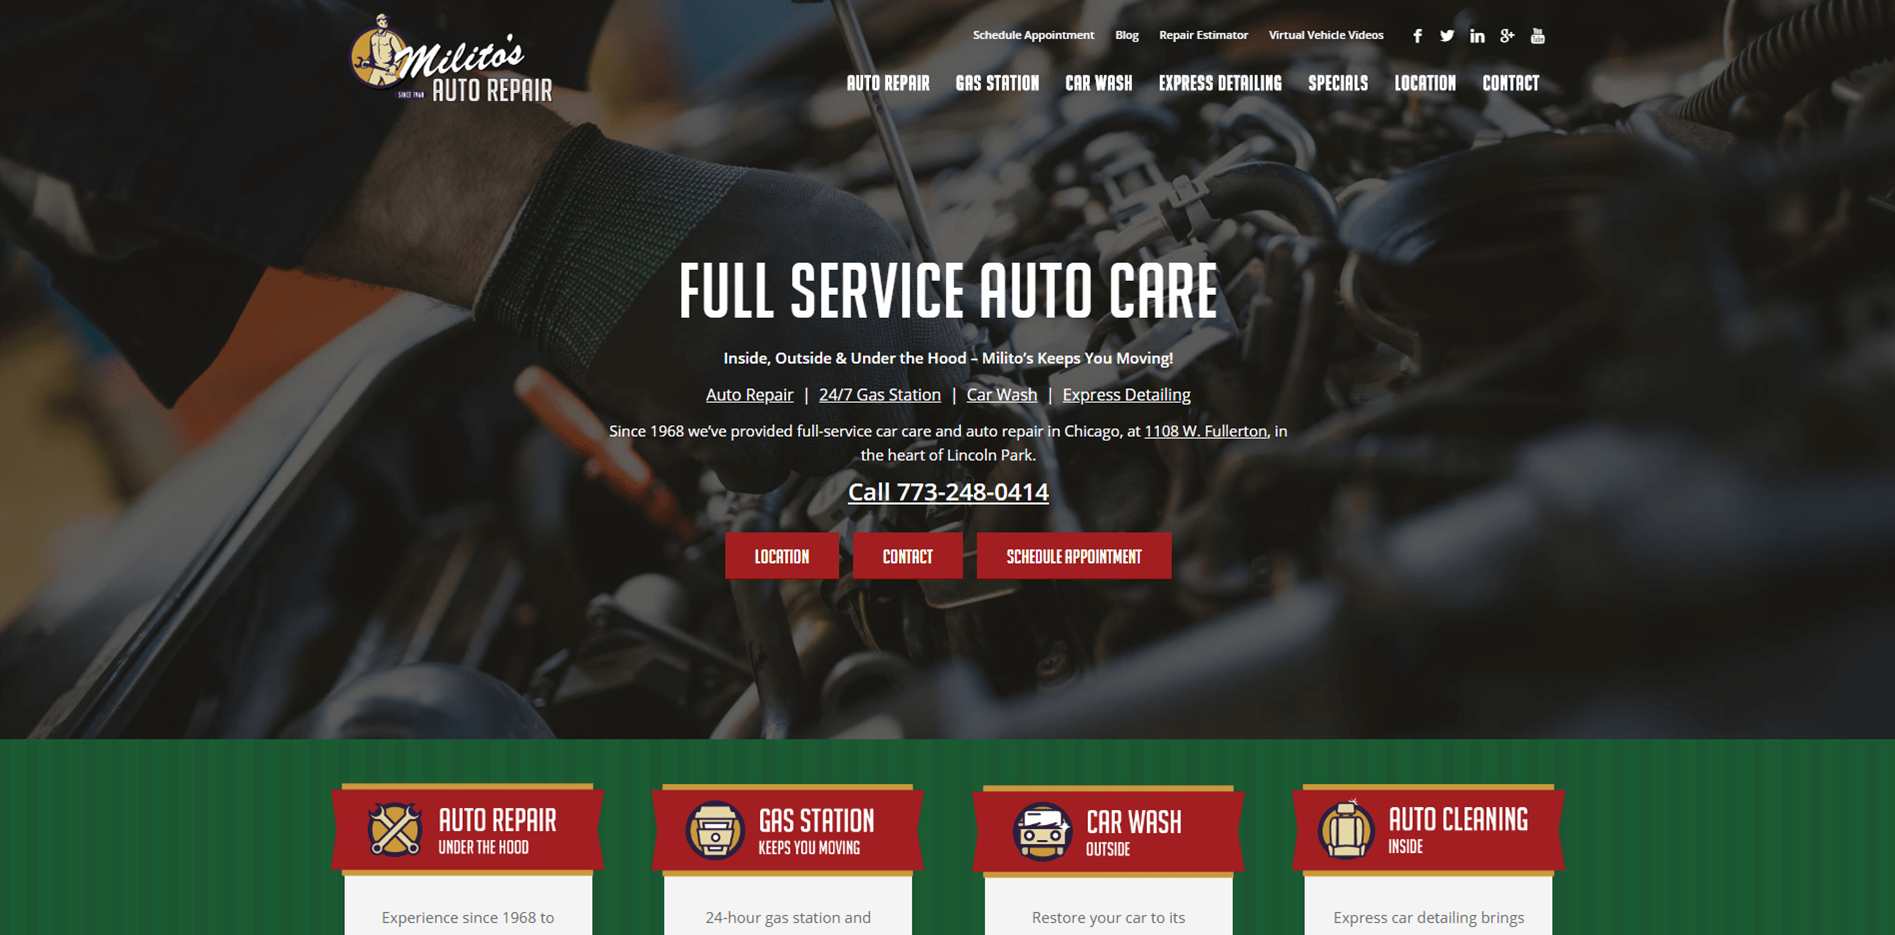 Militos Auto Repair - Small Business Website SEO and Paid Search Management by Purple Gen